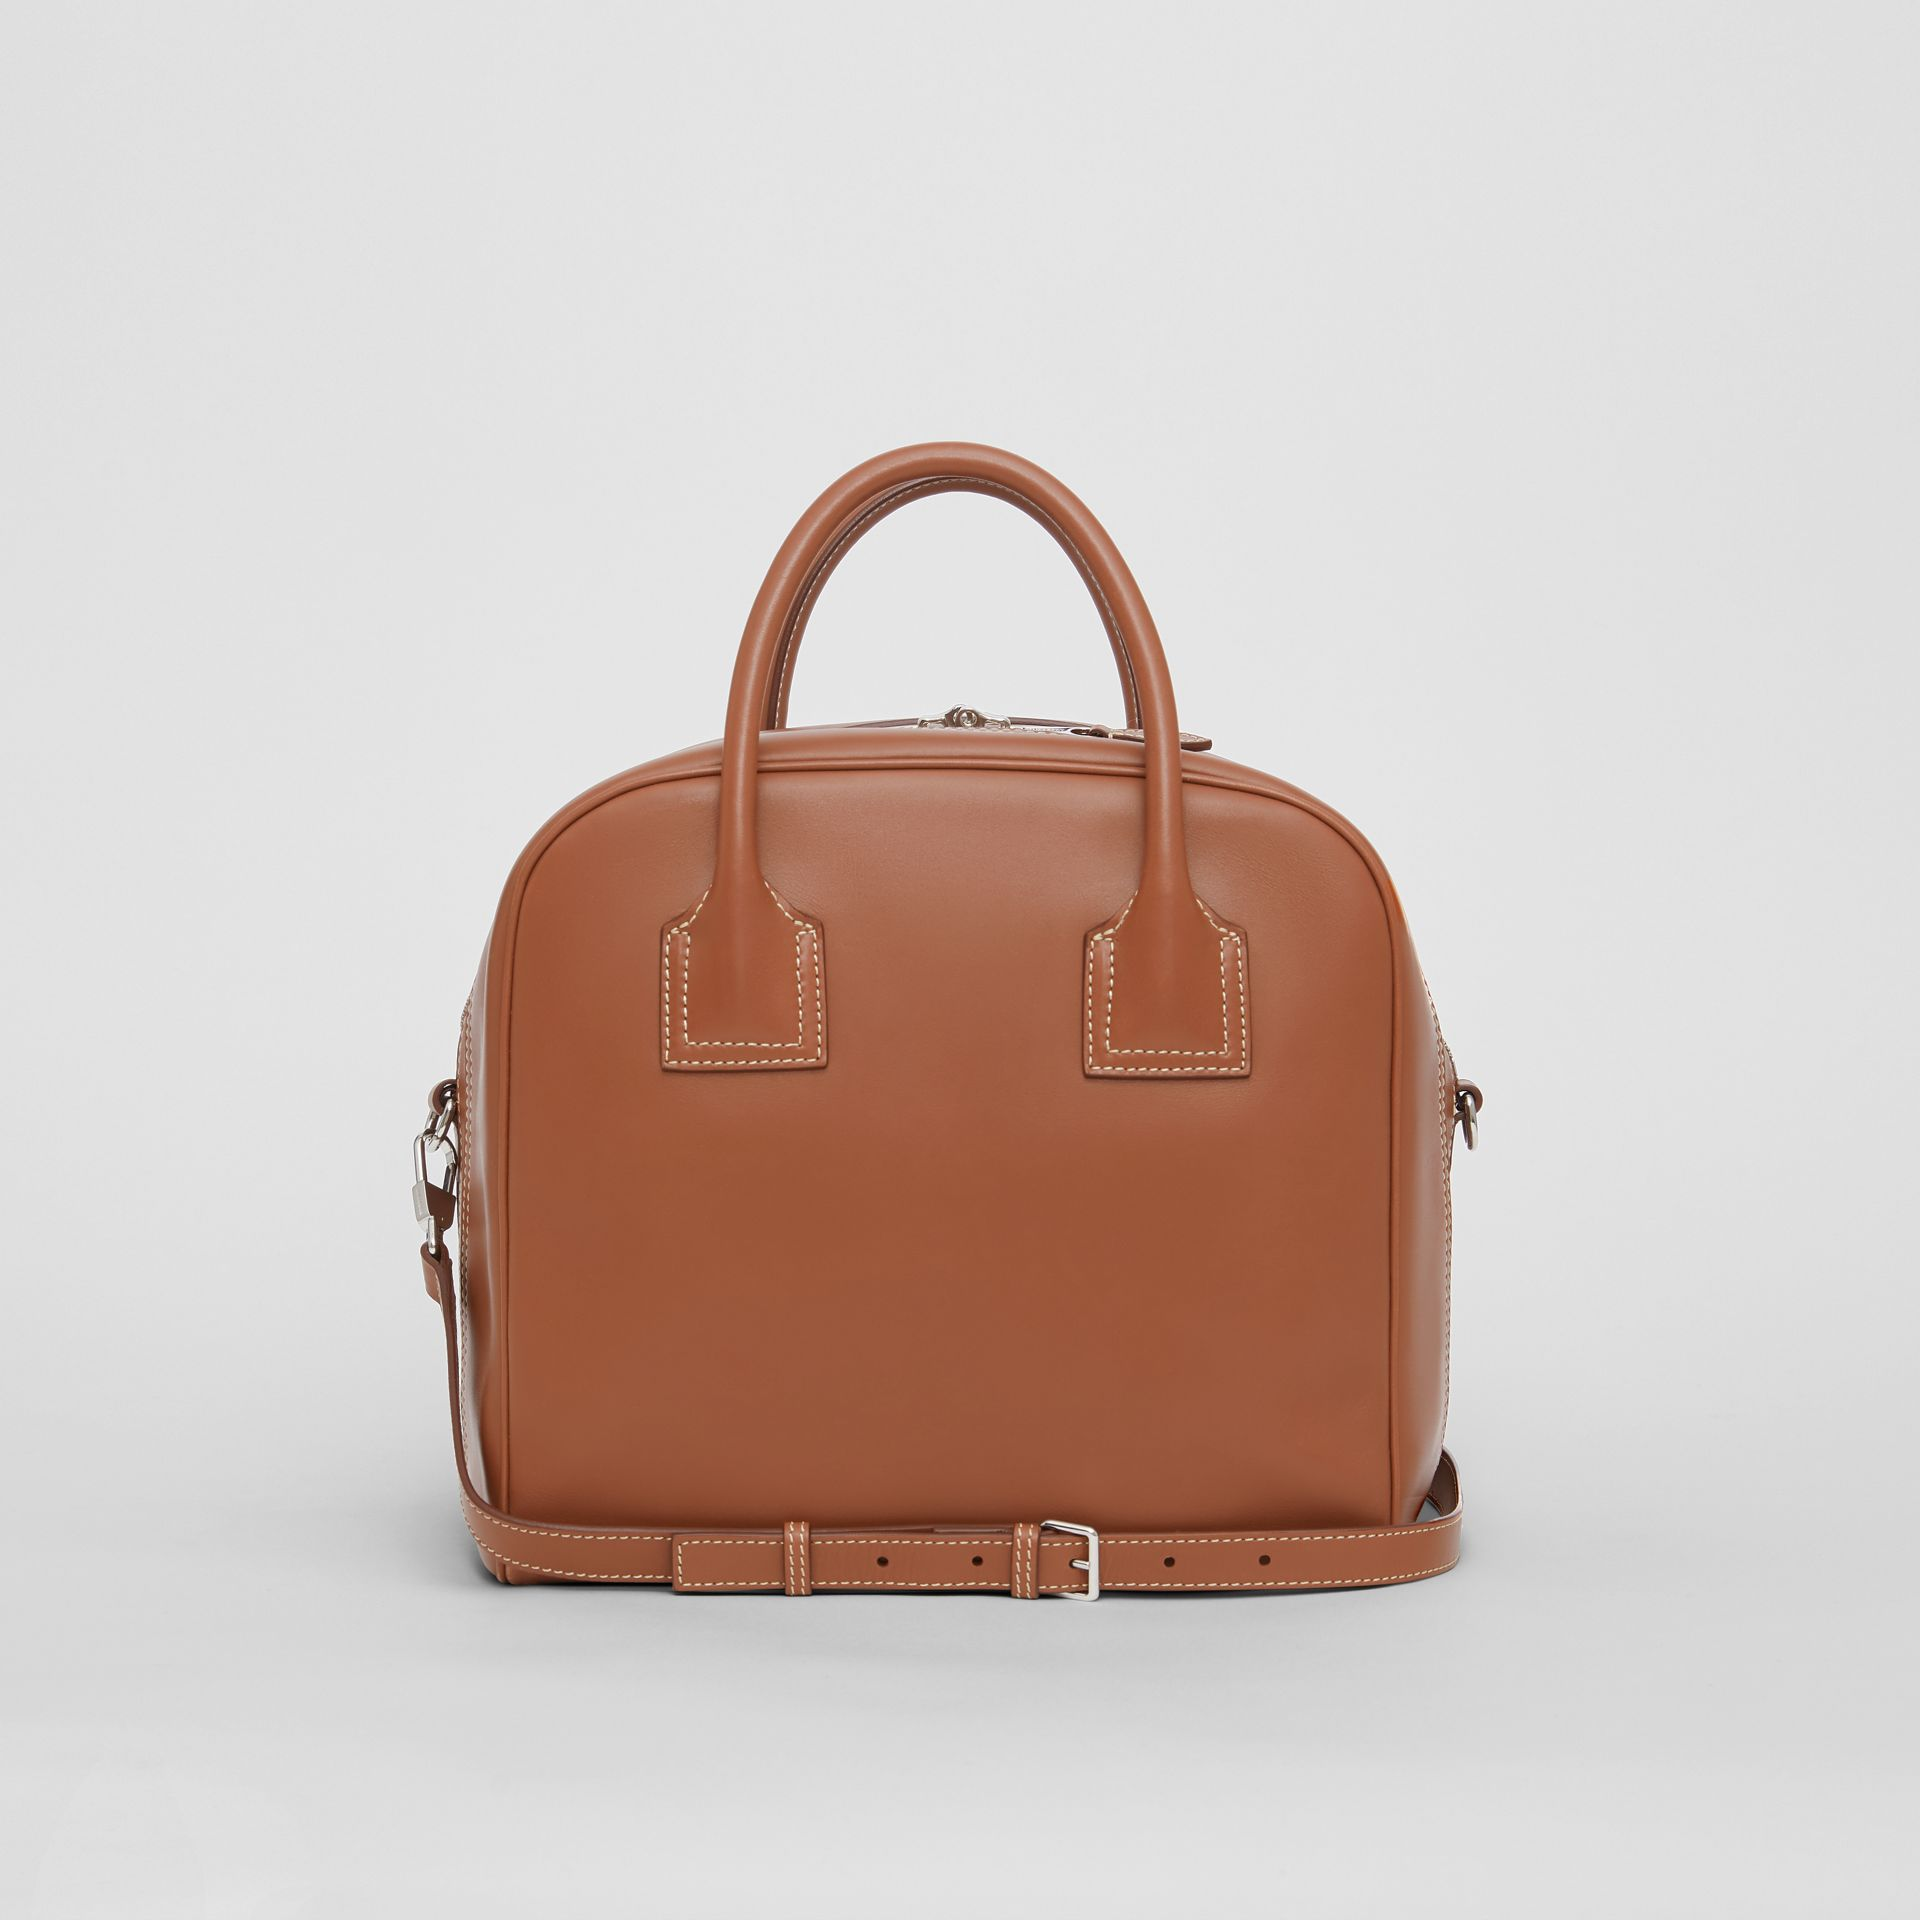 Medium Leather Cube Bag in Malt Brown - Women | Burberry - gallery image 7